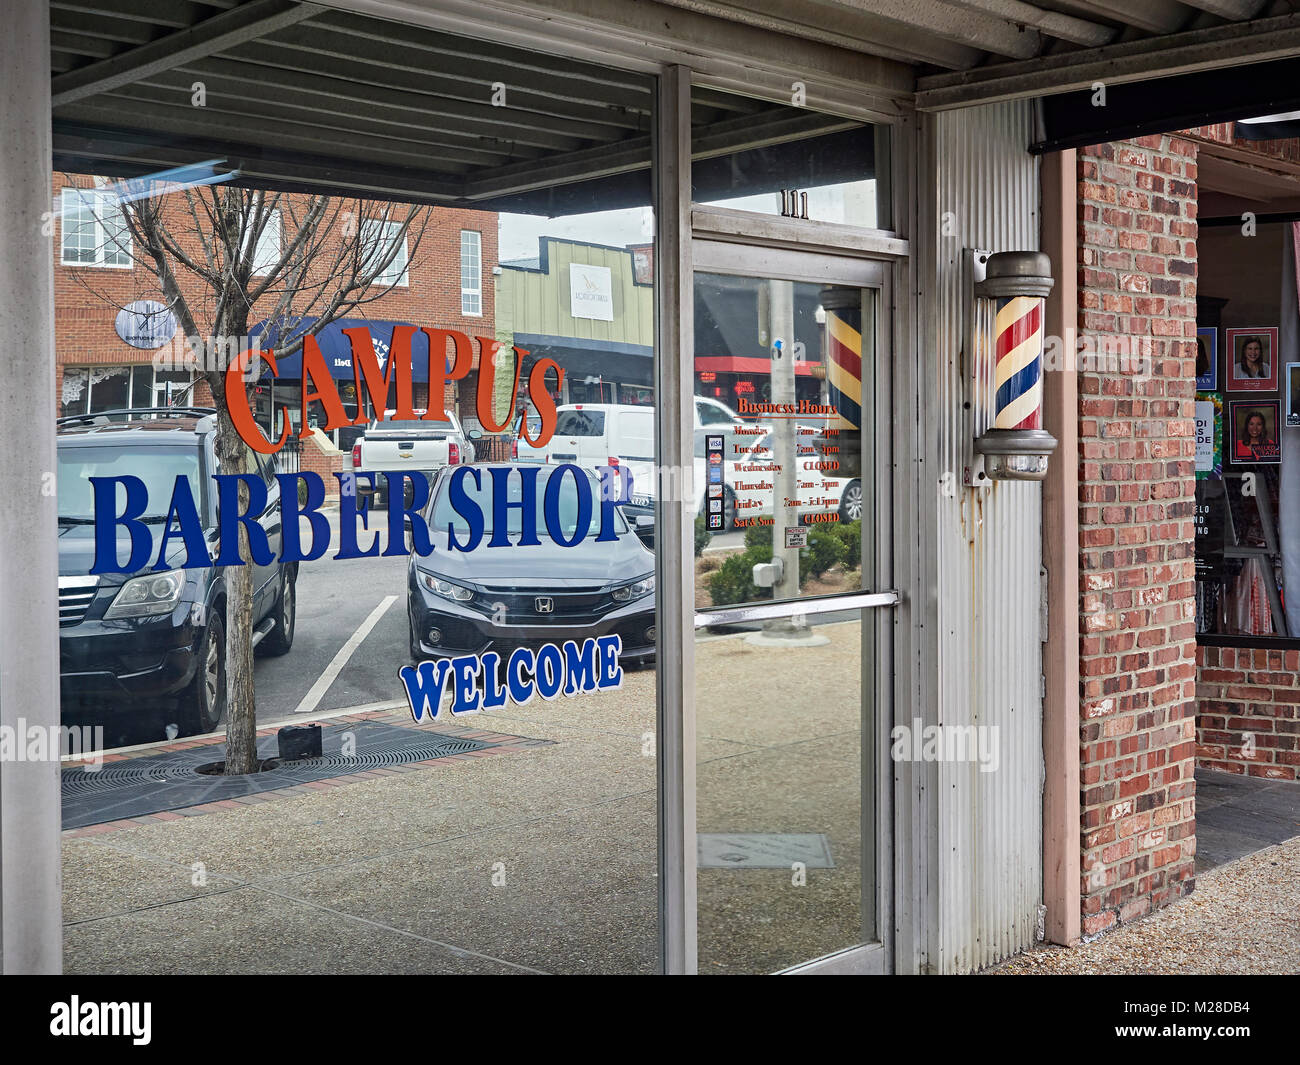 Front exterior entrance of the Campus Barber Shop business with lighted barber pole in Auburn Alabama, USA. - Stock Image